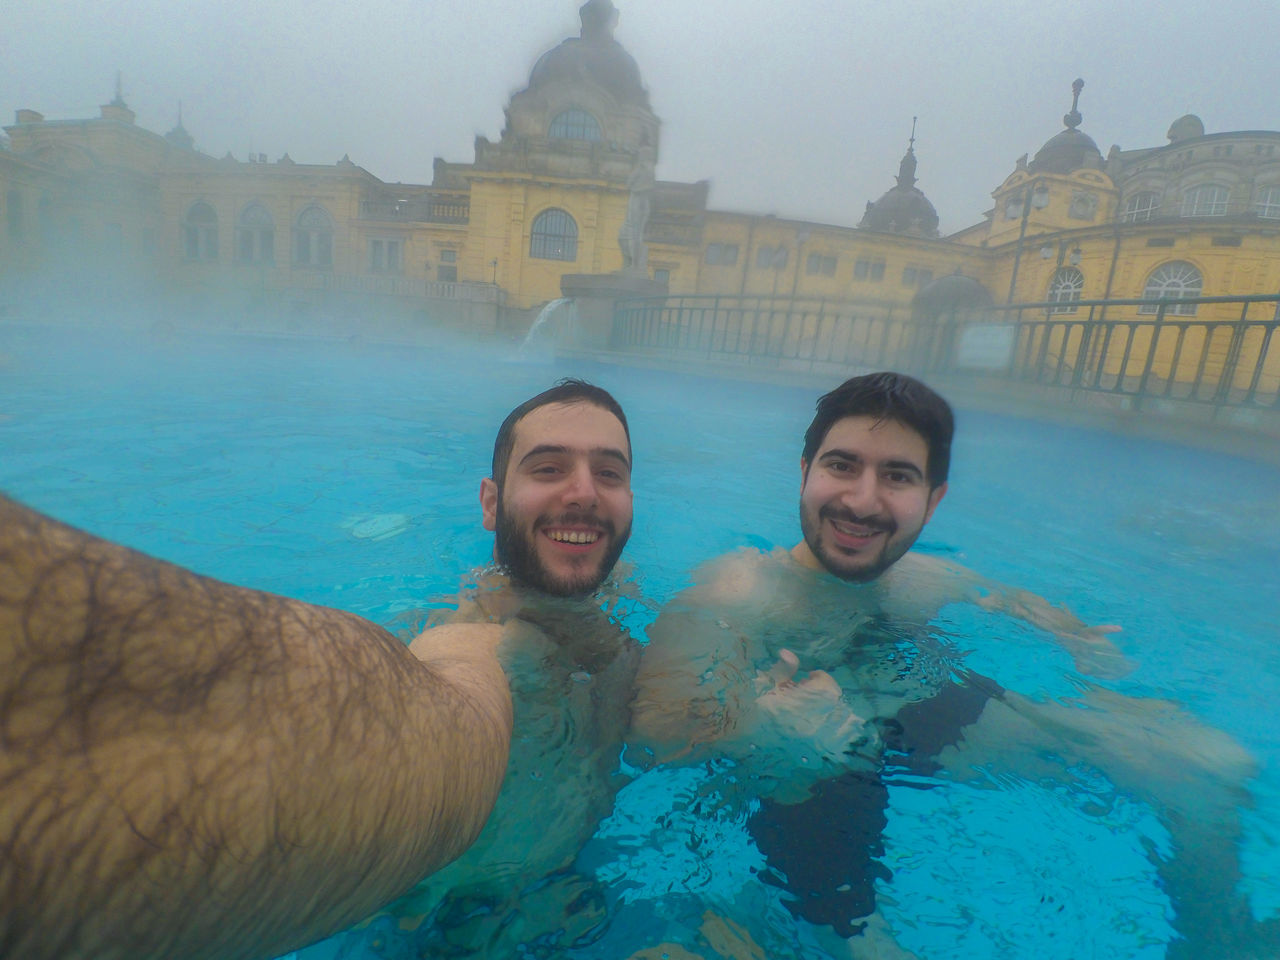 Architecture Bonding Bromance Brother Brothers Budapest Budapest, Hungary Friendship Looking At Camera Mid Adult Men Pool Pool Time Poolside Portrait Selfie Selfie ✌ Swimming Swimming Pool Szechenyi Bath Széchenyi Baths Togetherness Two People Vacations Water Young Adult